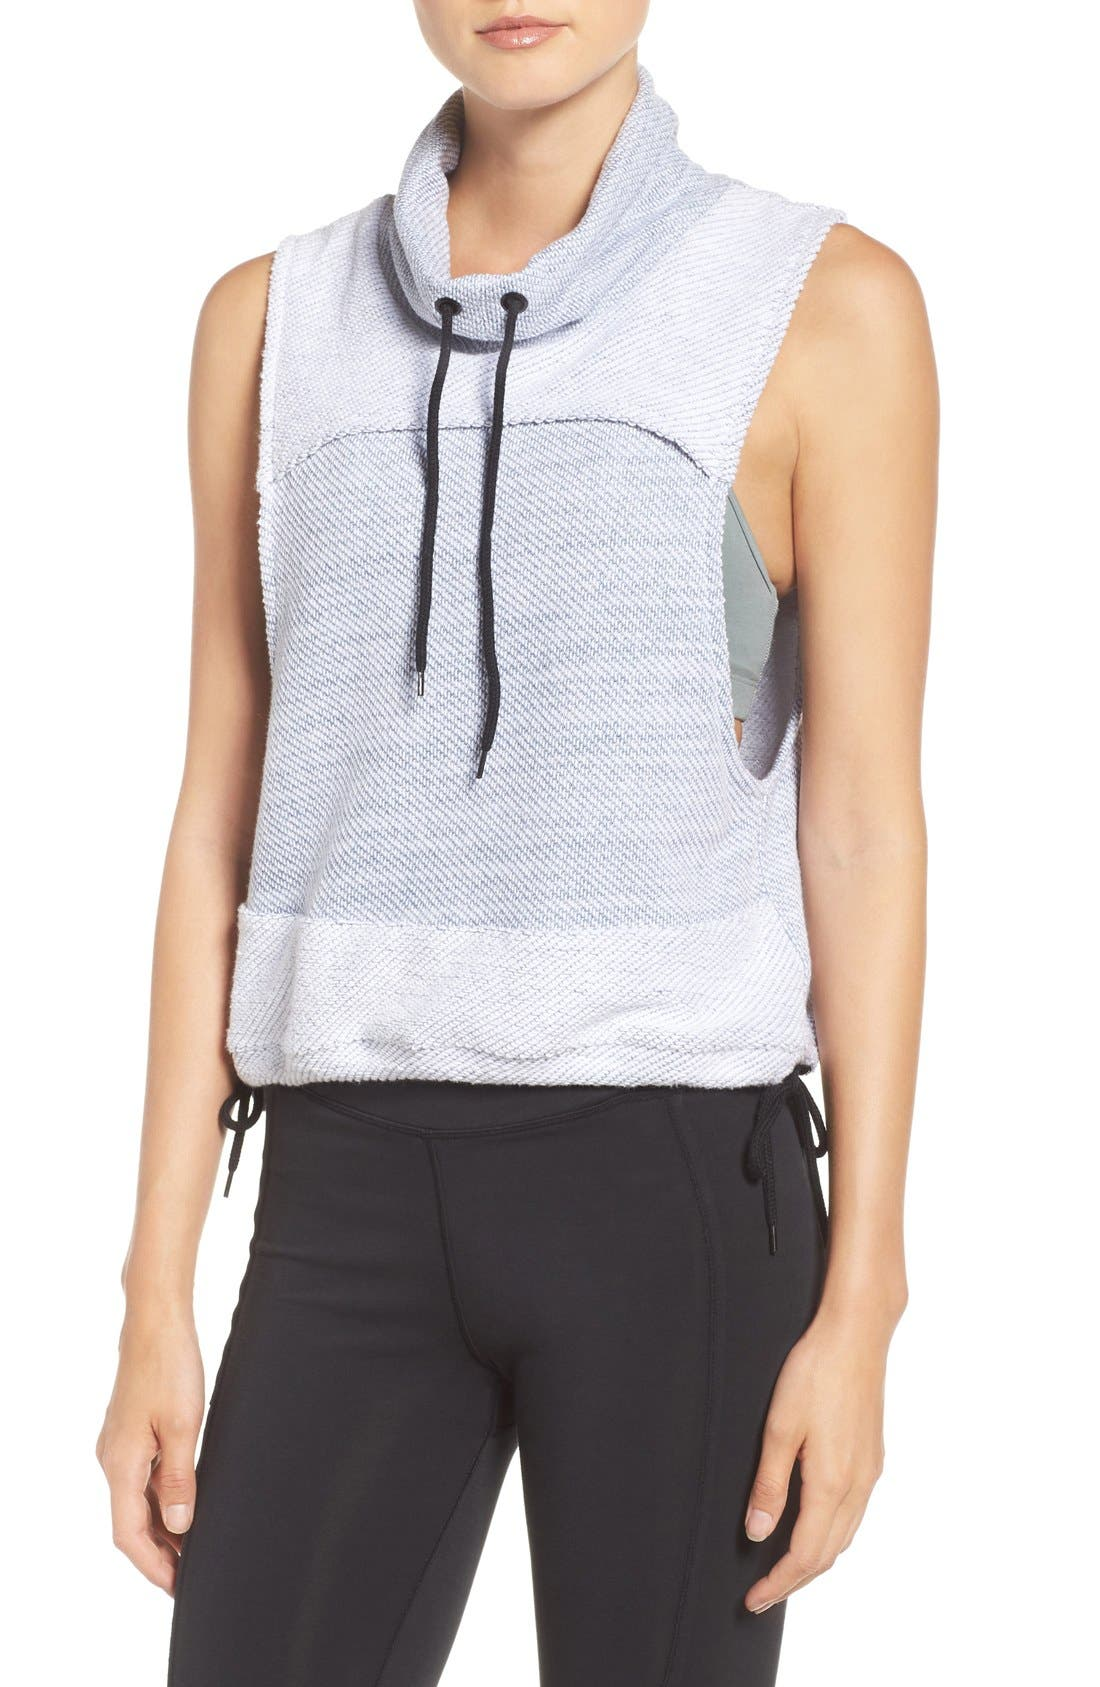 FREE PEOPLE MOVEMENT Free People 'Wrap It Up' Funnel Neck Vest in Grey